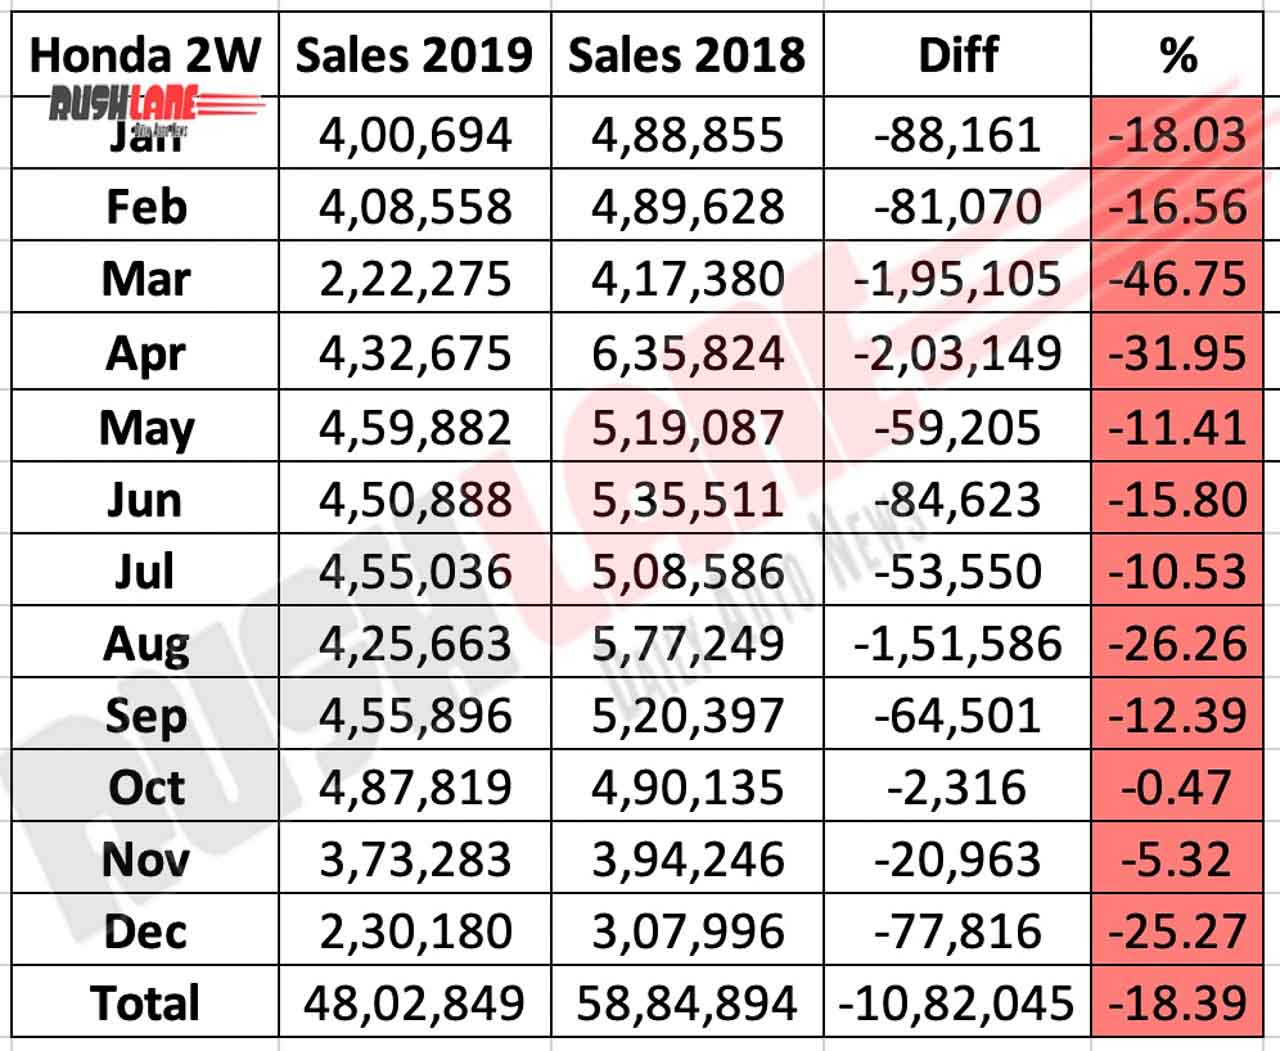 Honda scooters, motorcycles sales in 2019